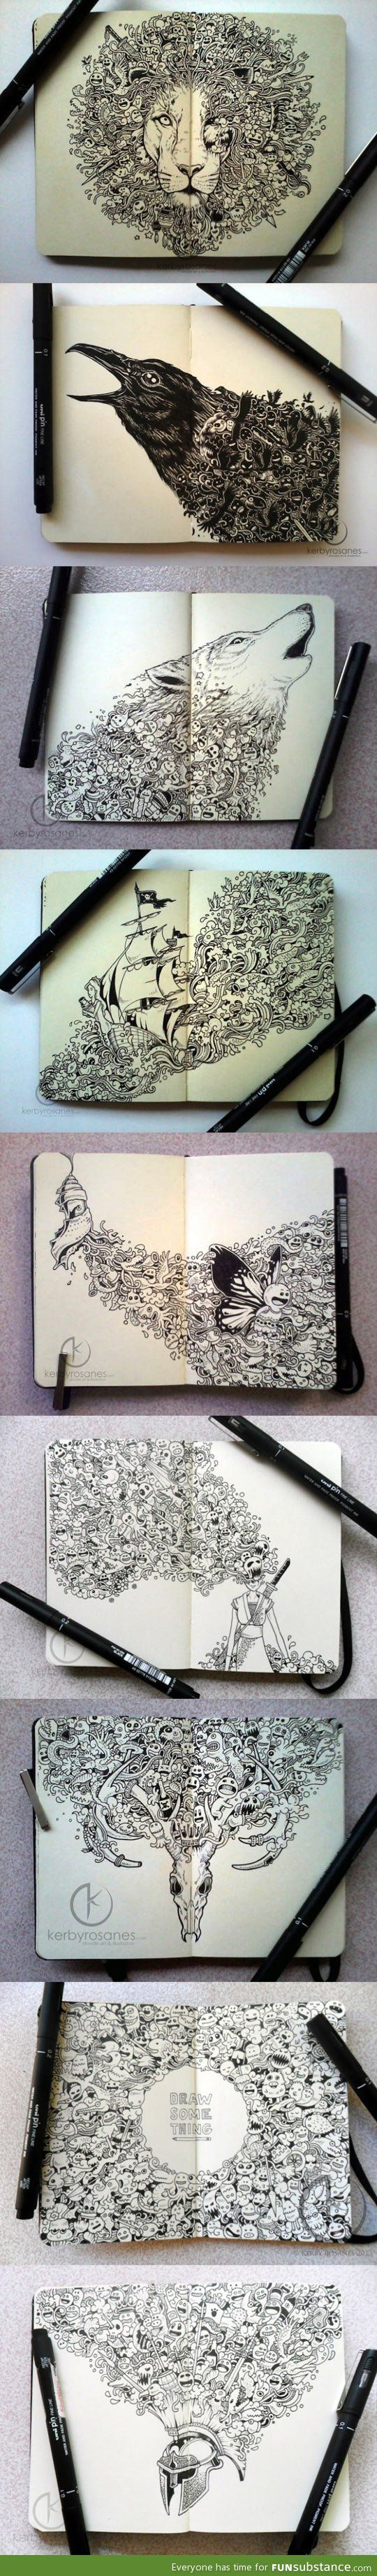 90 best images about tattoo sleeve on pinterest sleeve for Cool detailed drawings